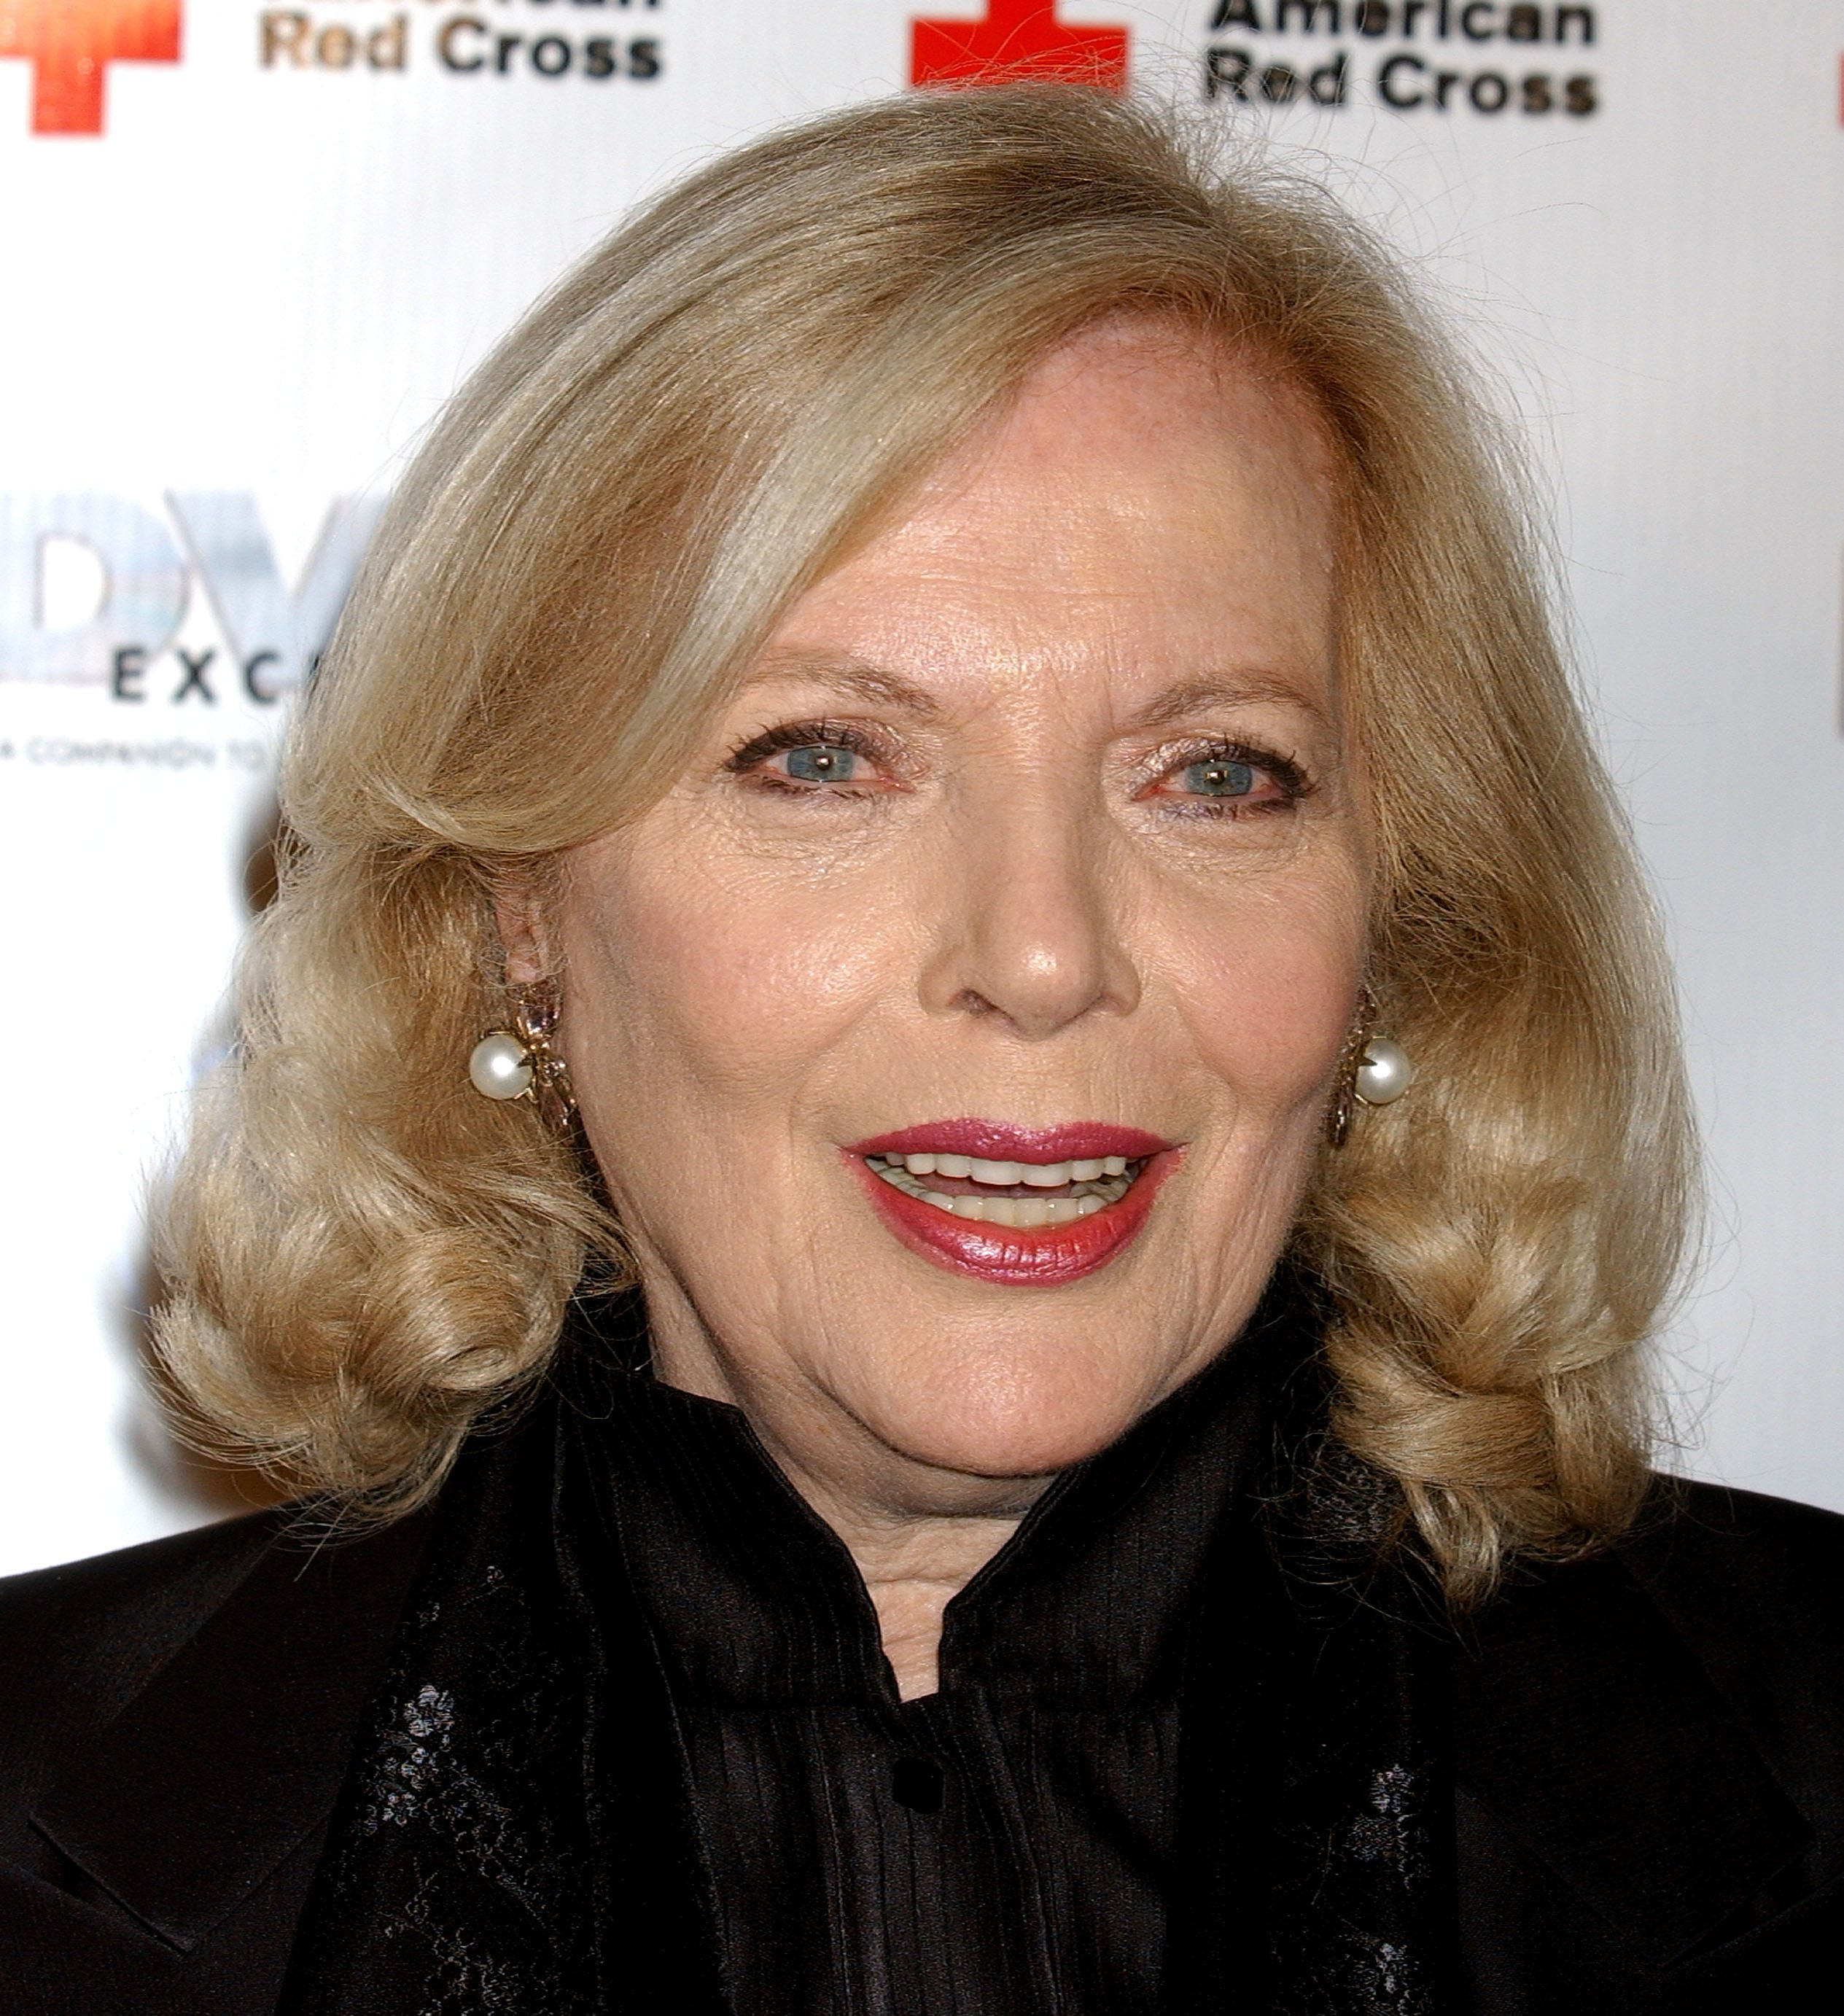 Barbara Bain on February 8, 2005 in Los Angeles, California | Source: Getty Images